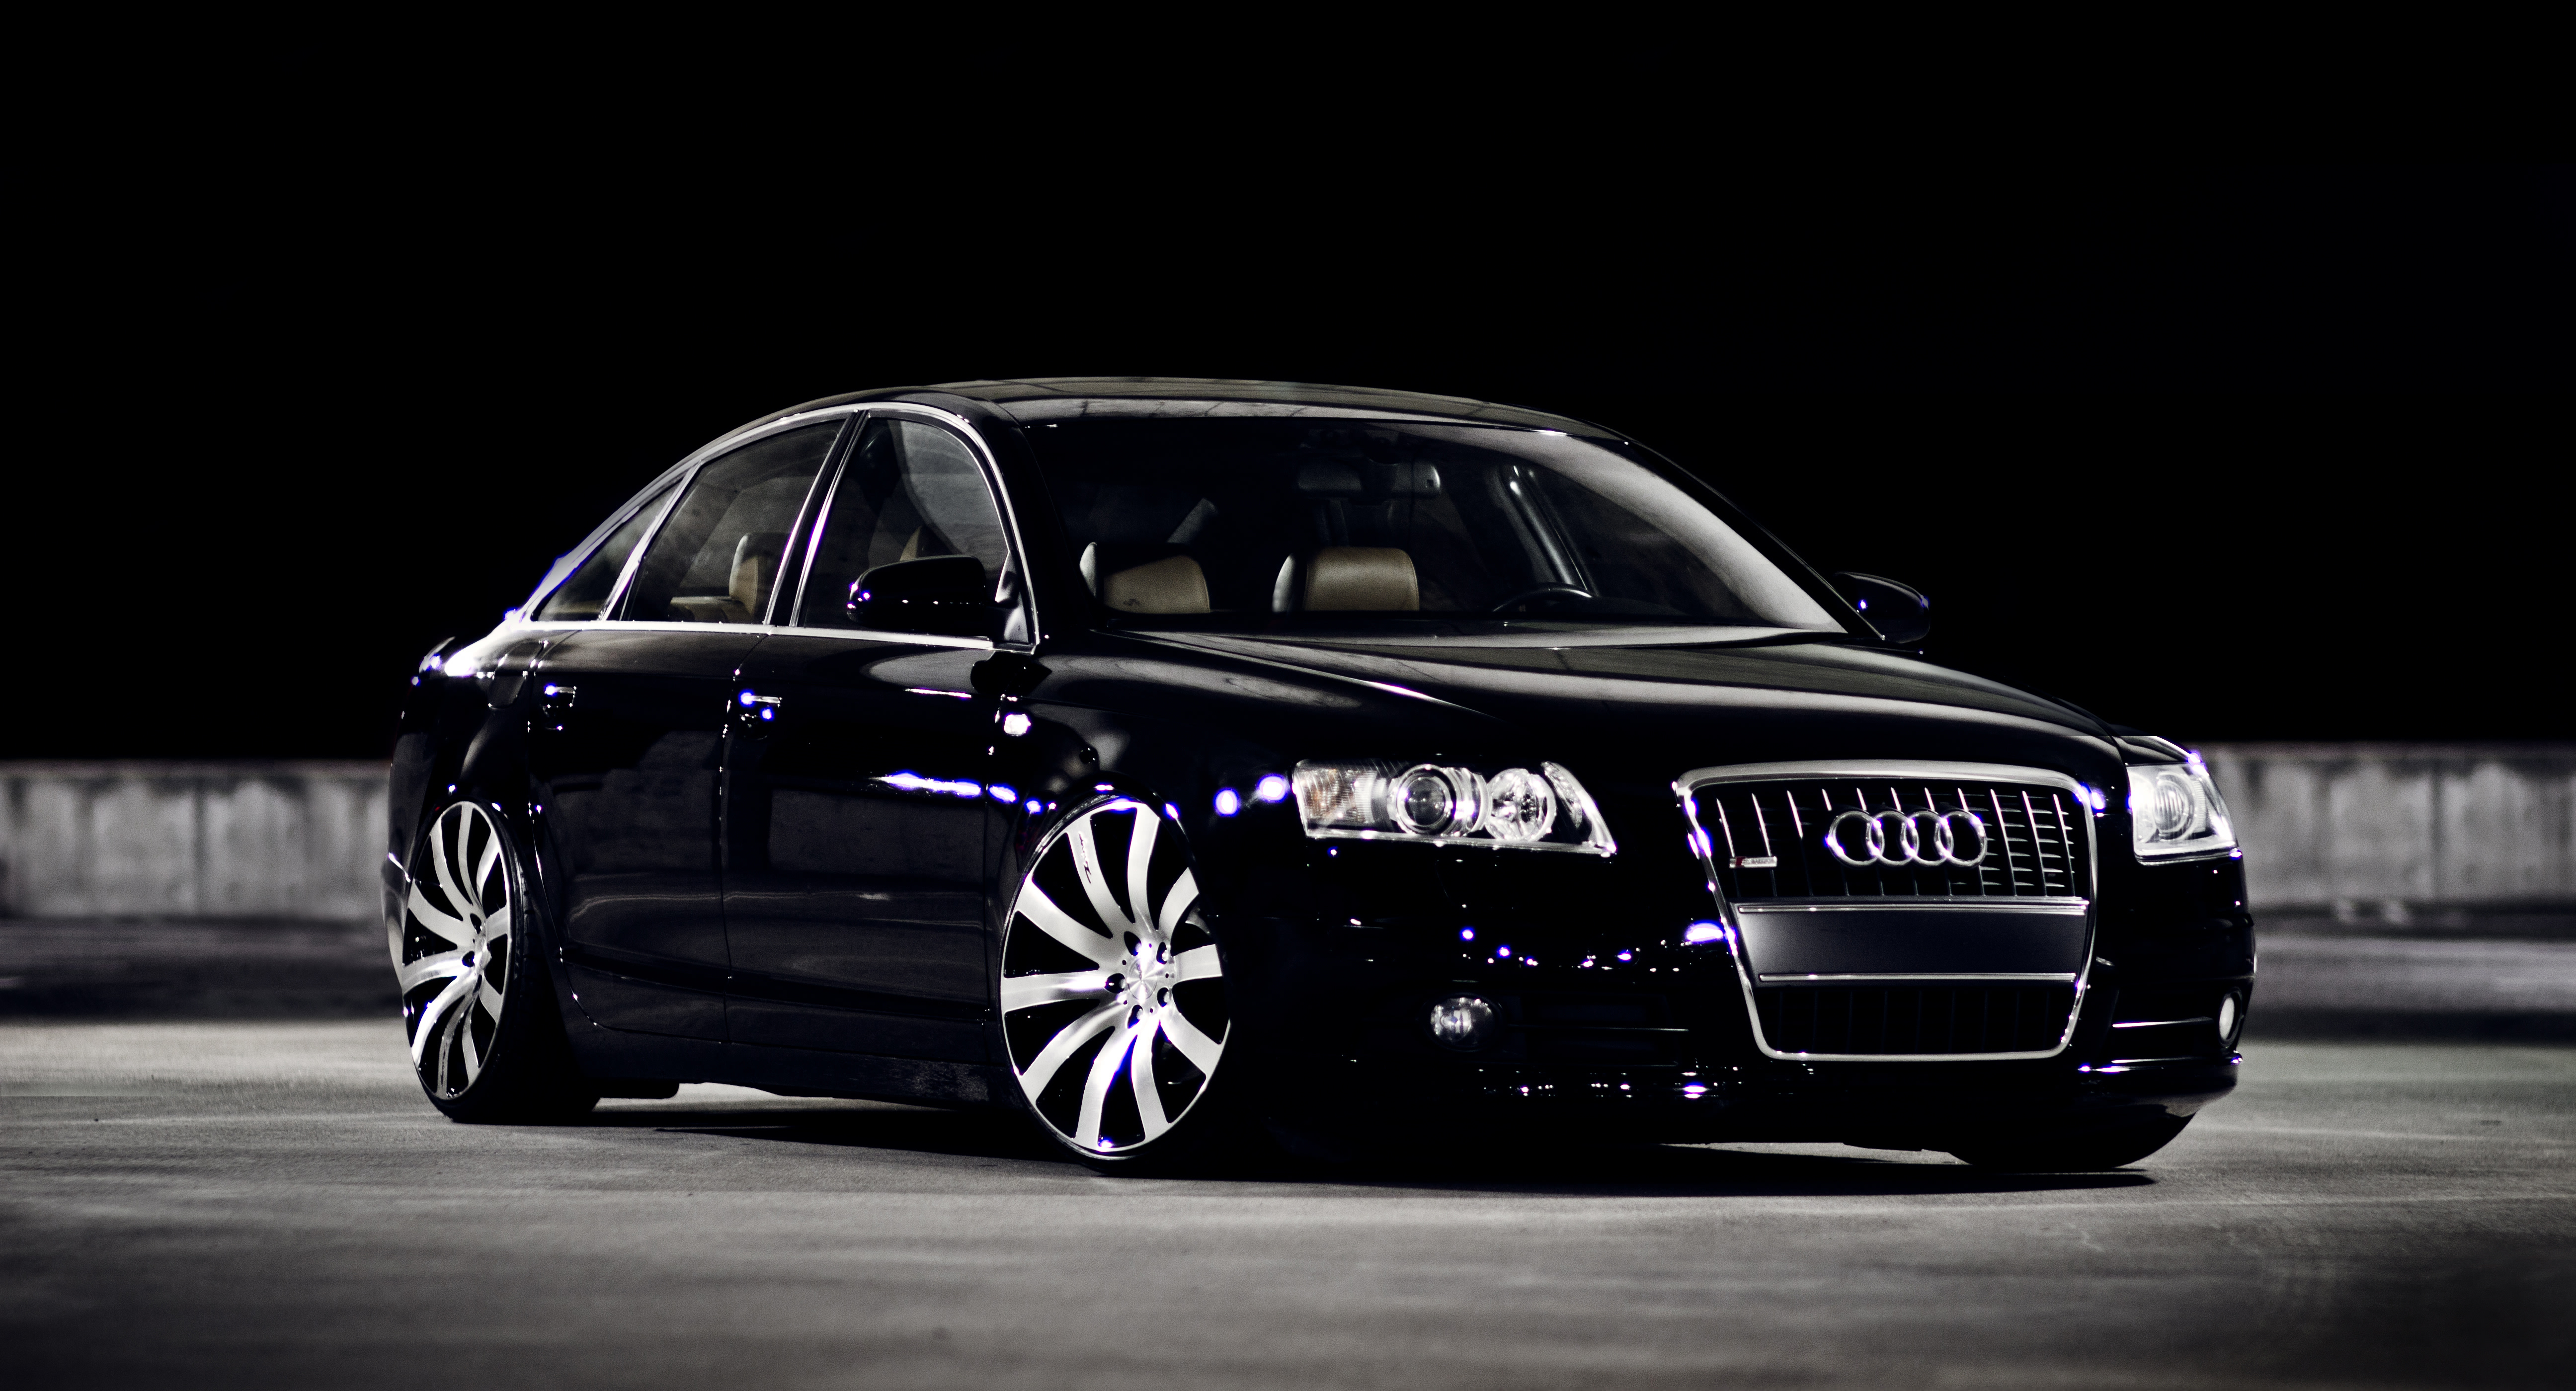 Wallpapers audi a6 black   car pictures and photos audi   download 5184x2800